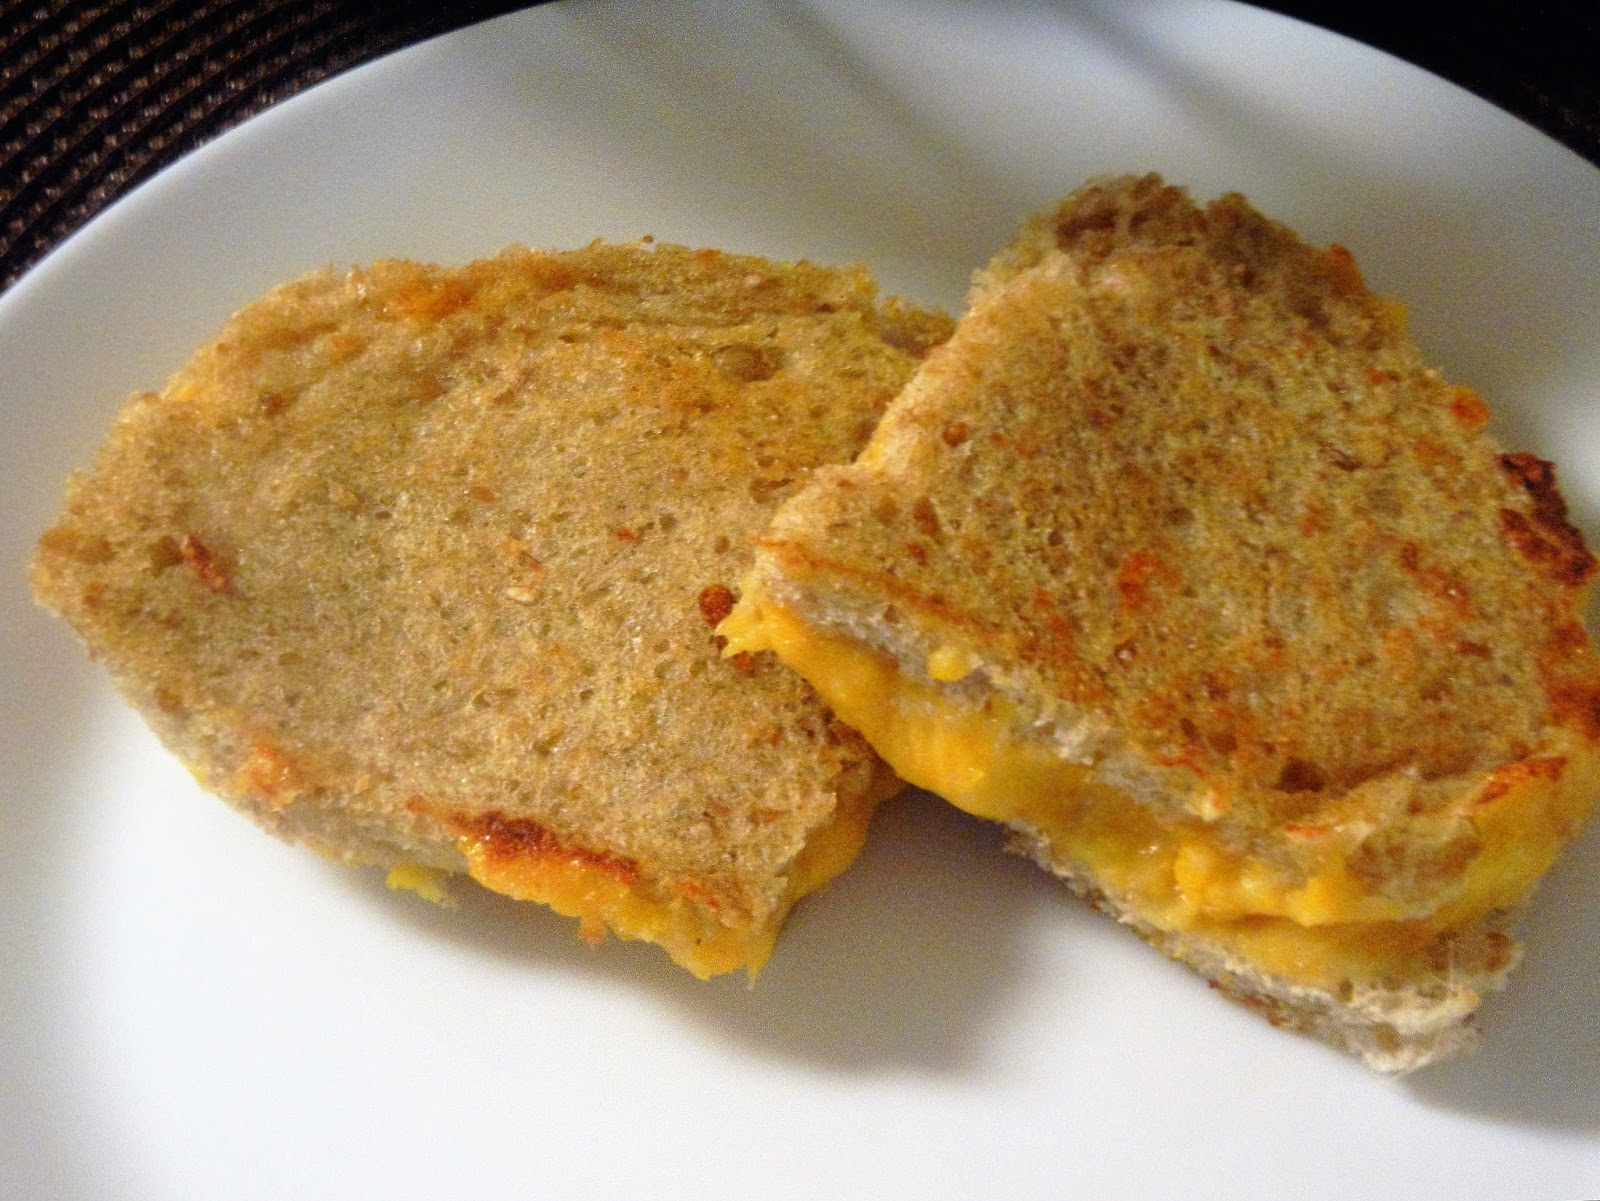 Gitas kitchen a blog for indian diabetic recipes and healthy recipes butternut squash cheese sandwich forumfinder